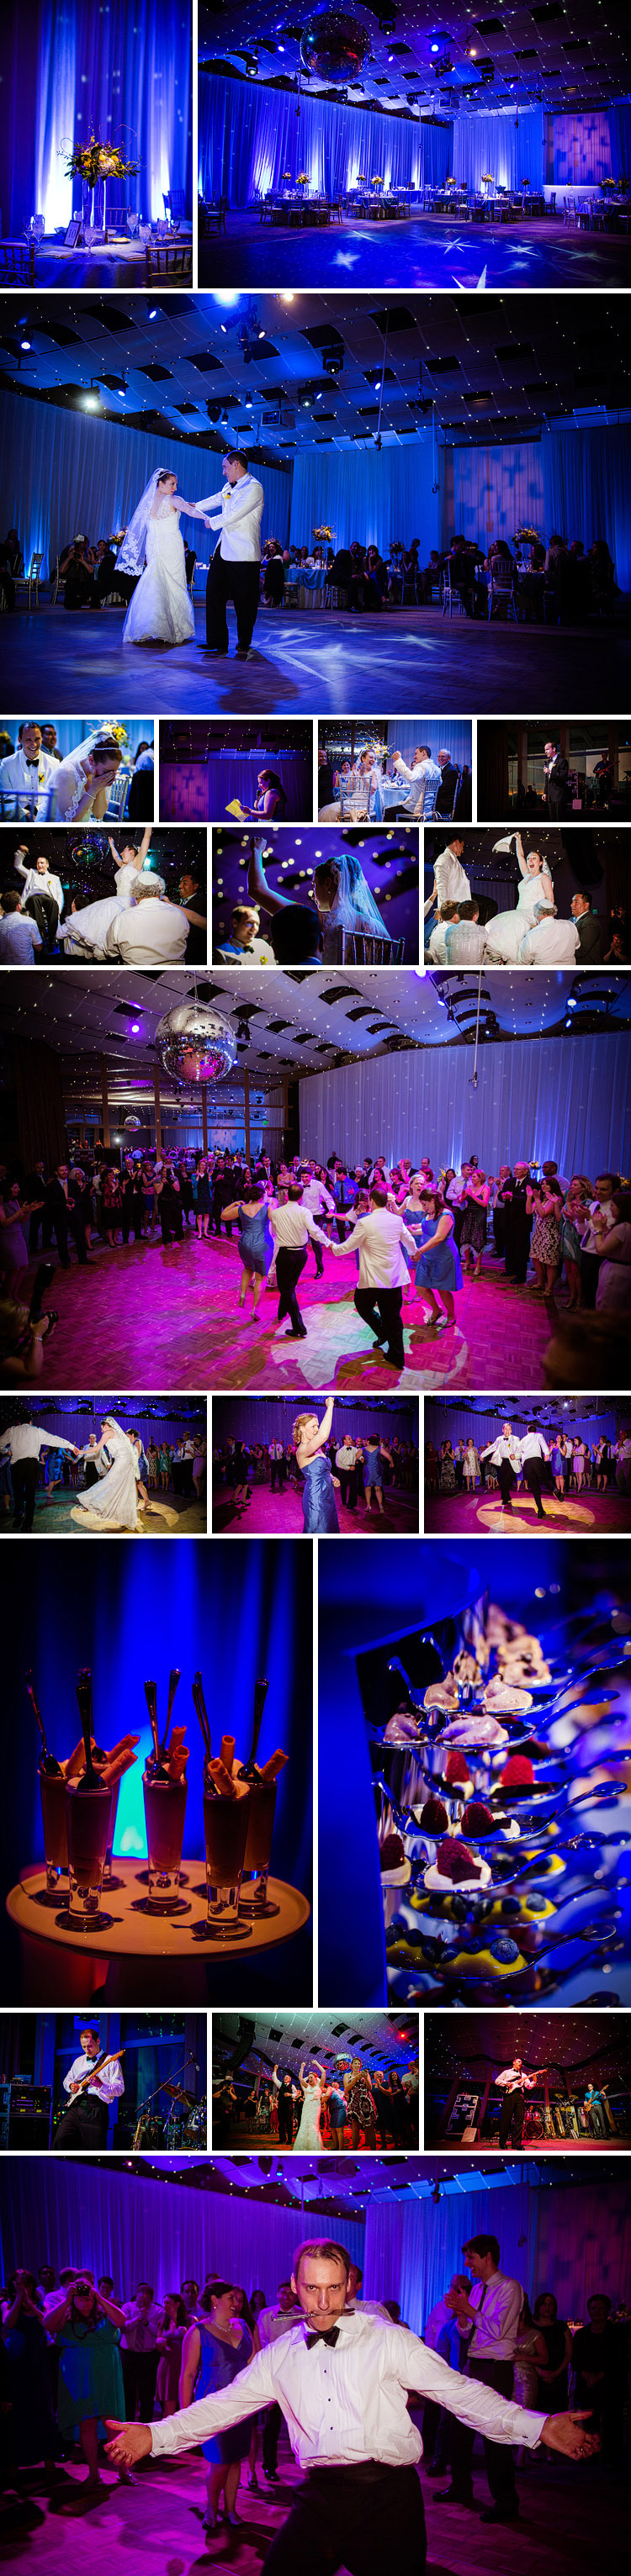 seawell-ballroom-denver-wedding-006